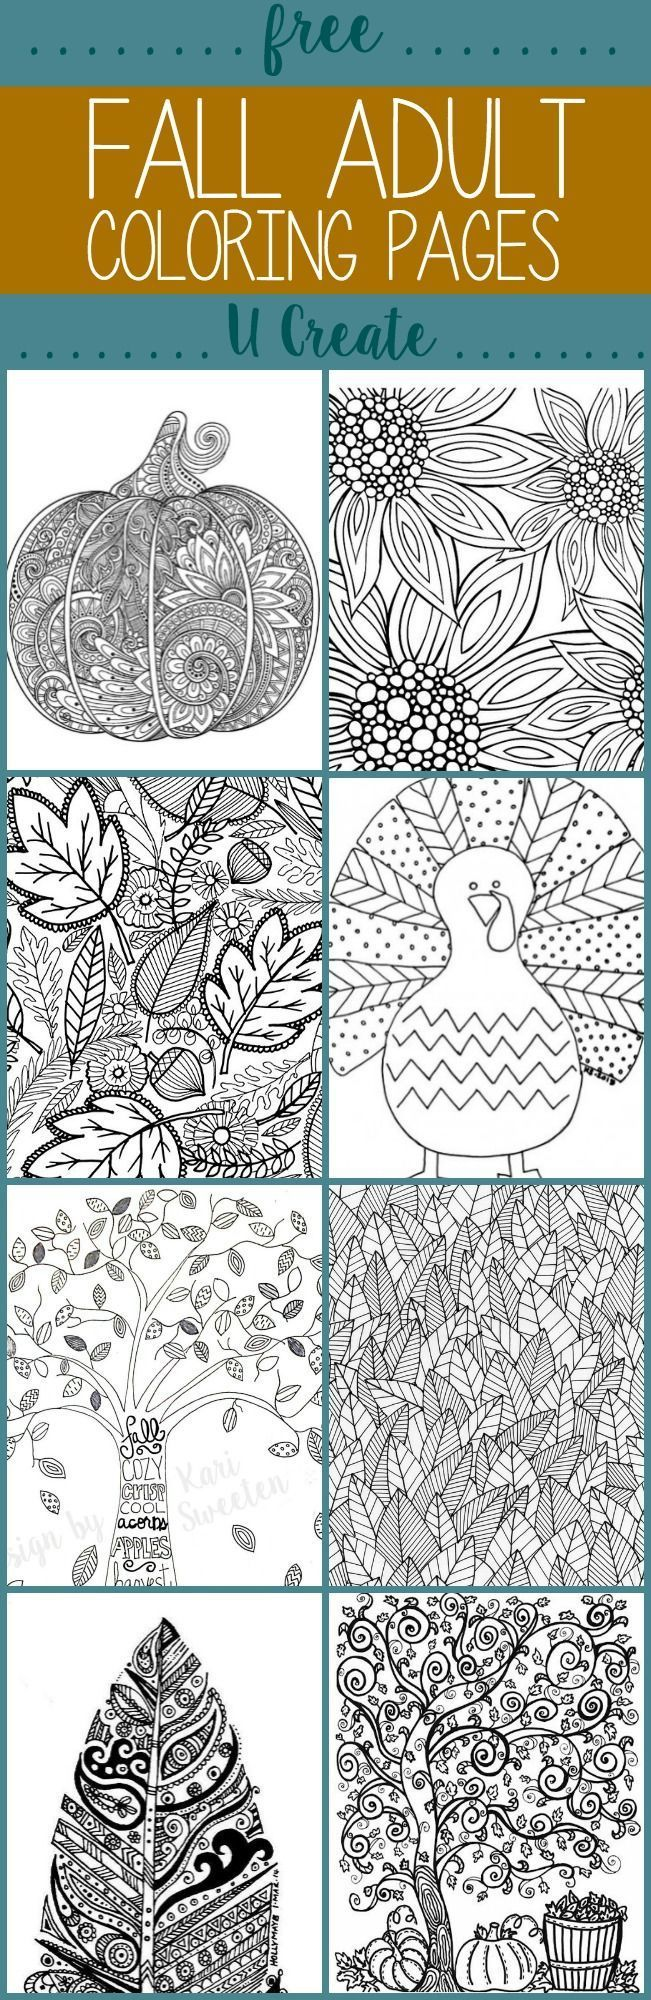 Thanksgiving mandala coloring pages - Free Fall Adult Coloring Pages U Create